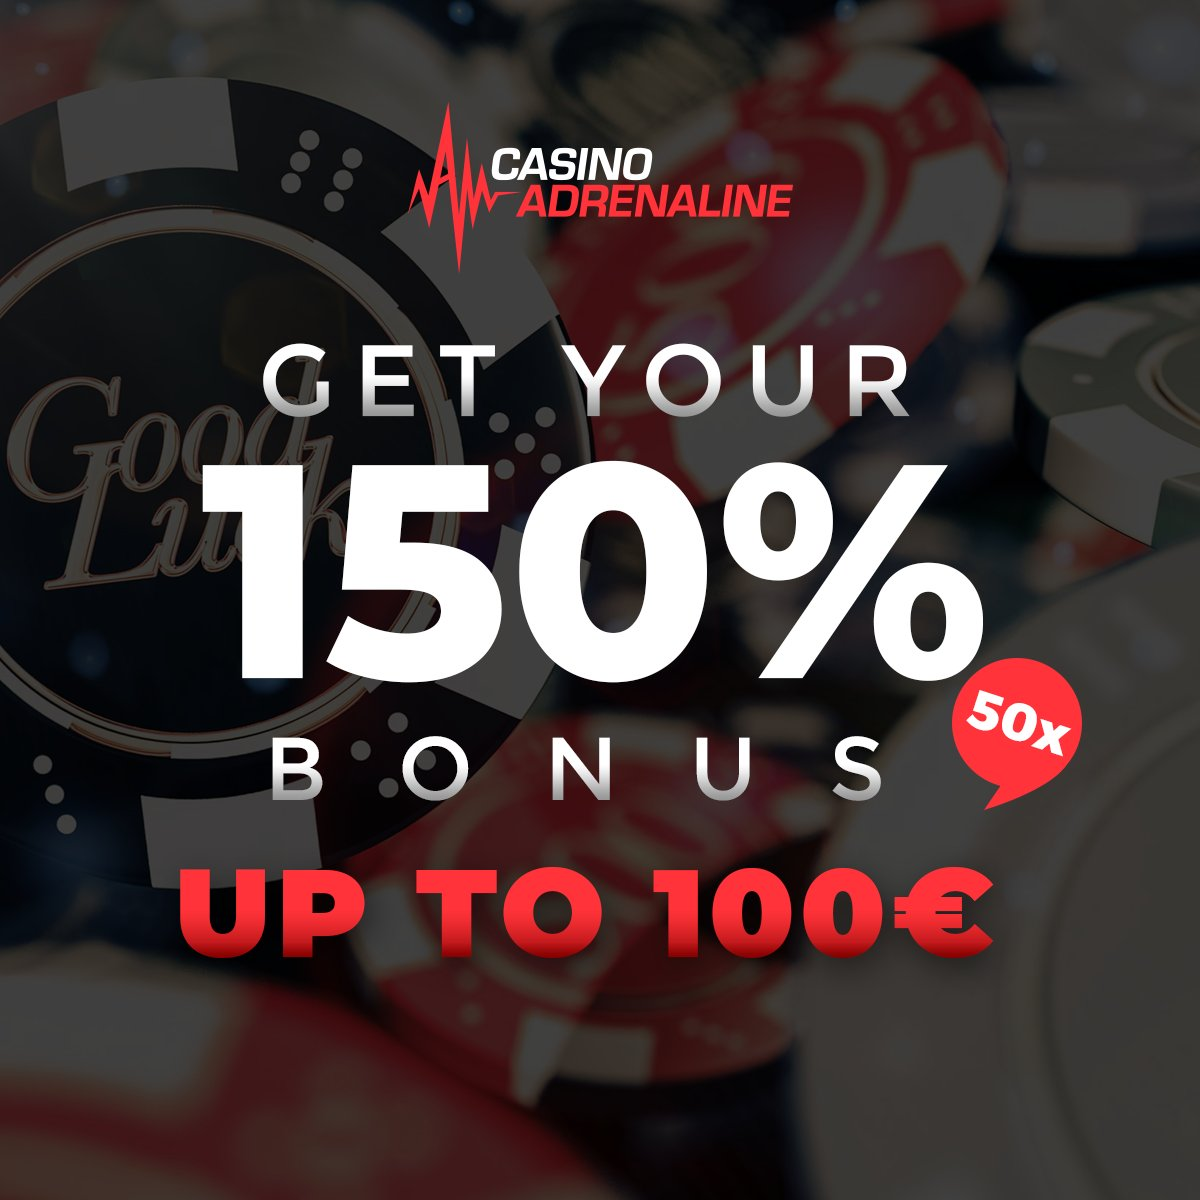 test Twitter Media - Are you ready for today's killer promotion? Get your 150% bonus up to 100 EUR 50x. Bonus and deposit included! 👍😎🎲 #CasinoAdrenaline #TotalJackpot #CasinoAdrenalingaming #casinos #slot #casinoluck #enjoythegame https://t.co/0dUjHLKH2d